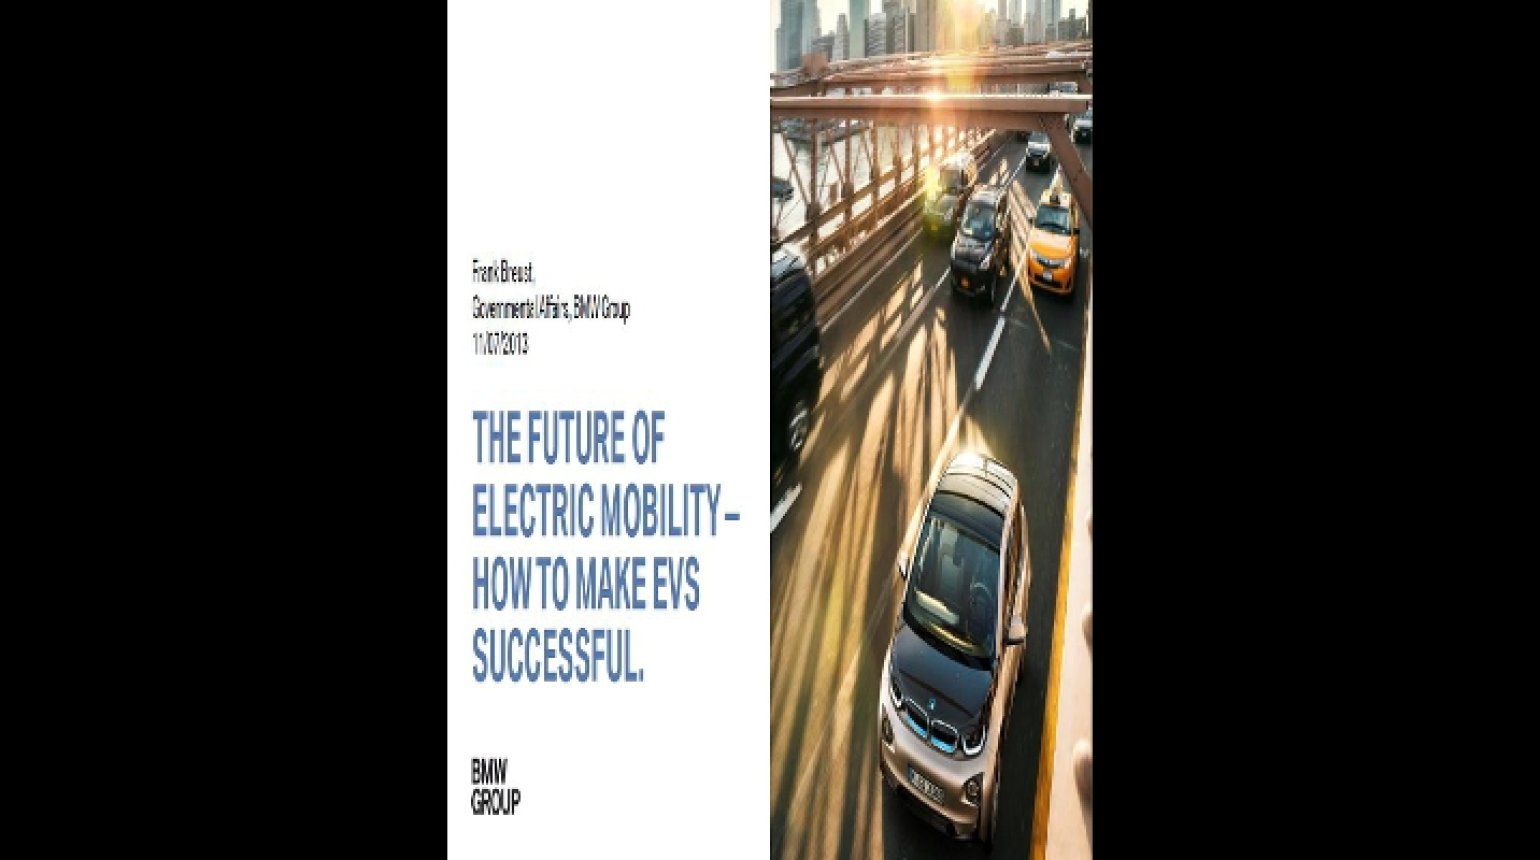 Video - The Future of Electric Mobility - How to Make EVS Successful